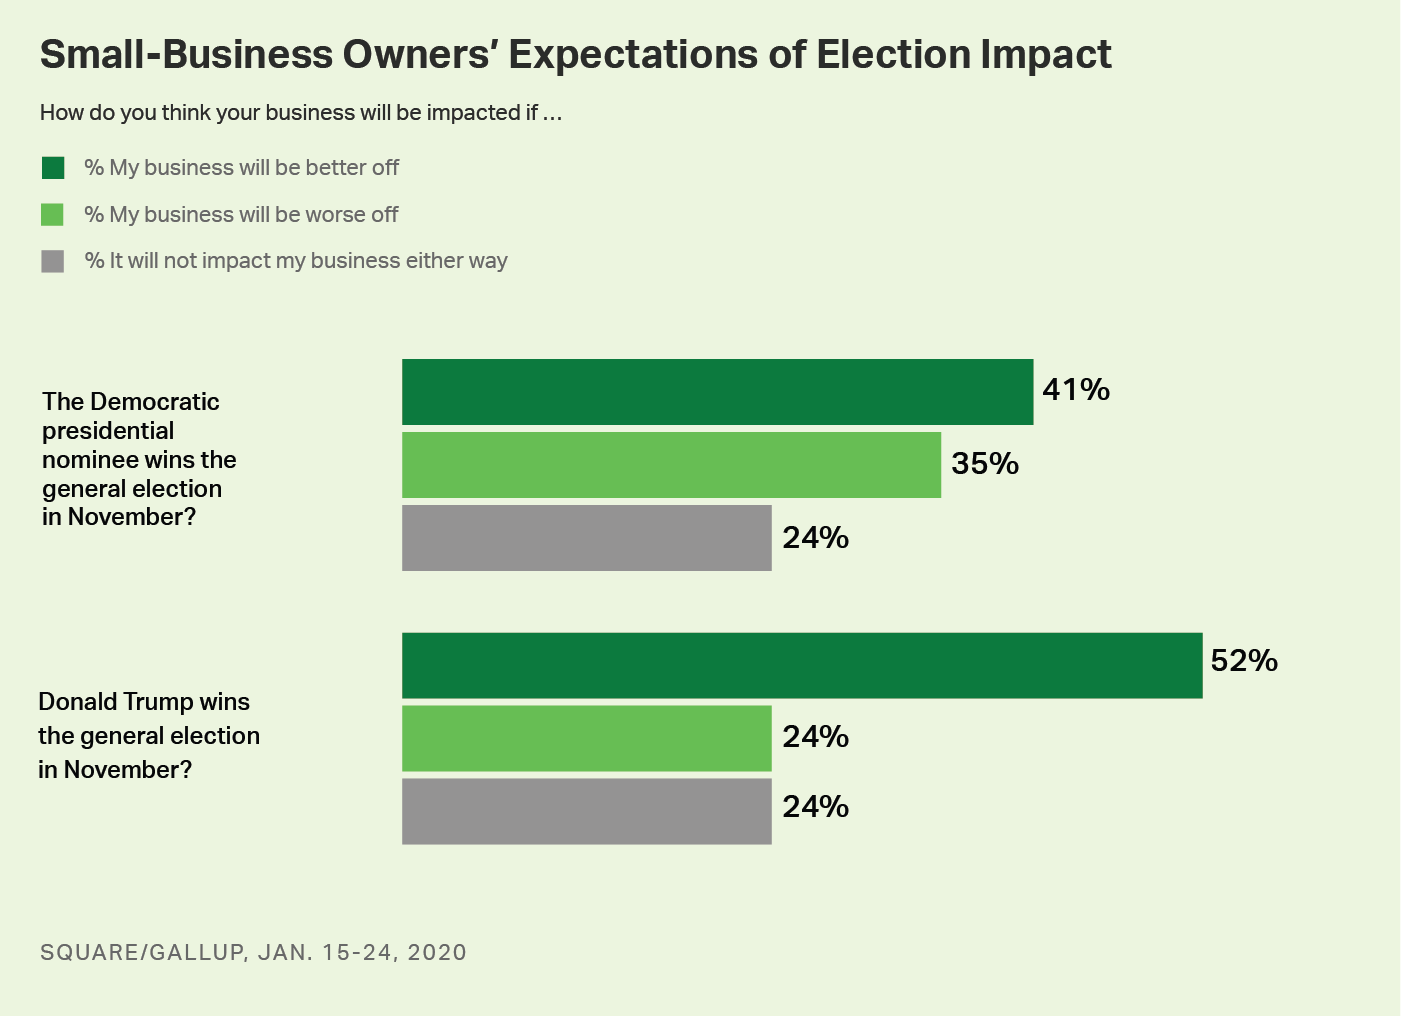 Bar chart. Small-business owners' views of how their businesses will be affected, depending on who wins the general election.